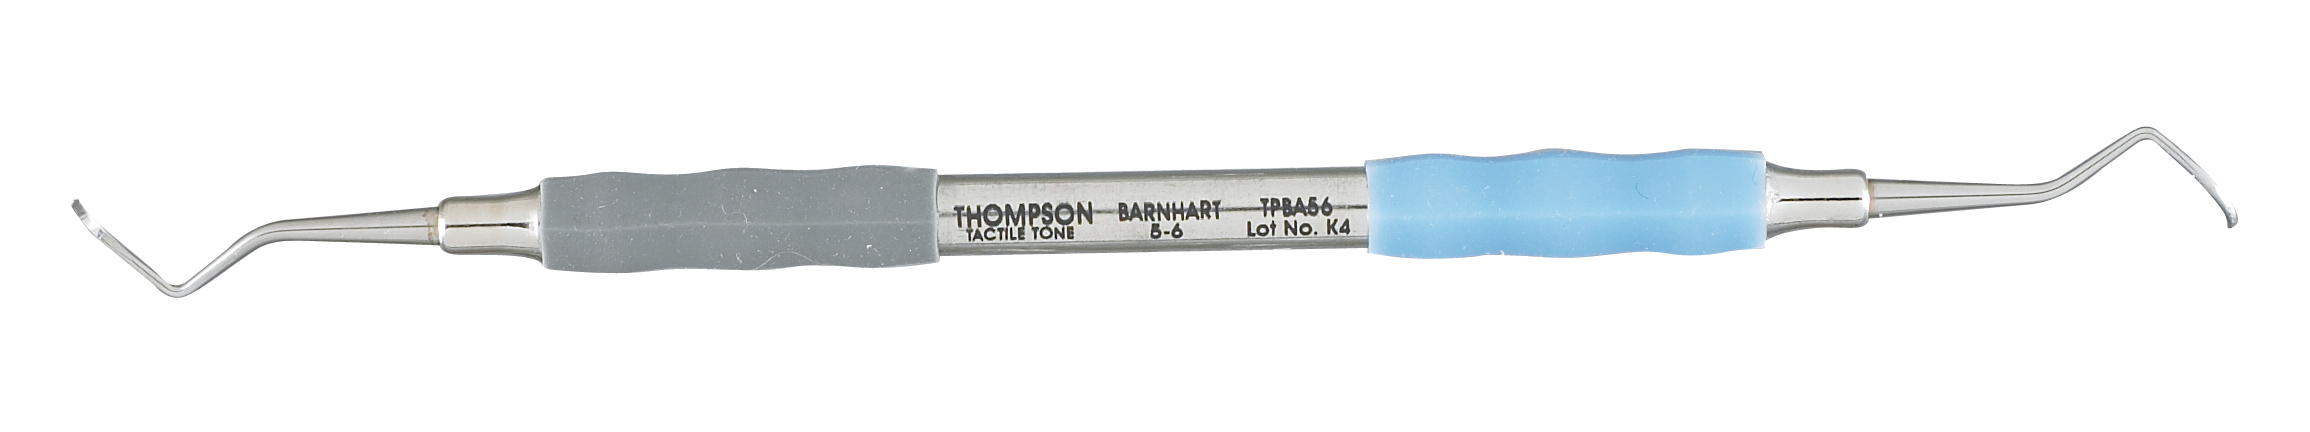 barnhart-5-6-curette-tactile-tone-double-end-tpba56-miltex.jpg